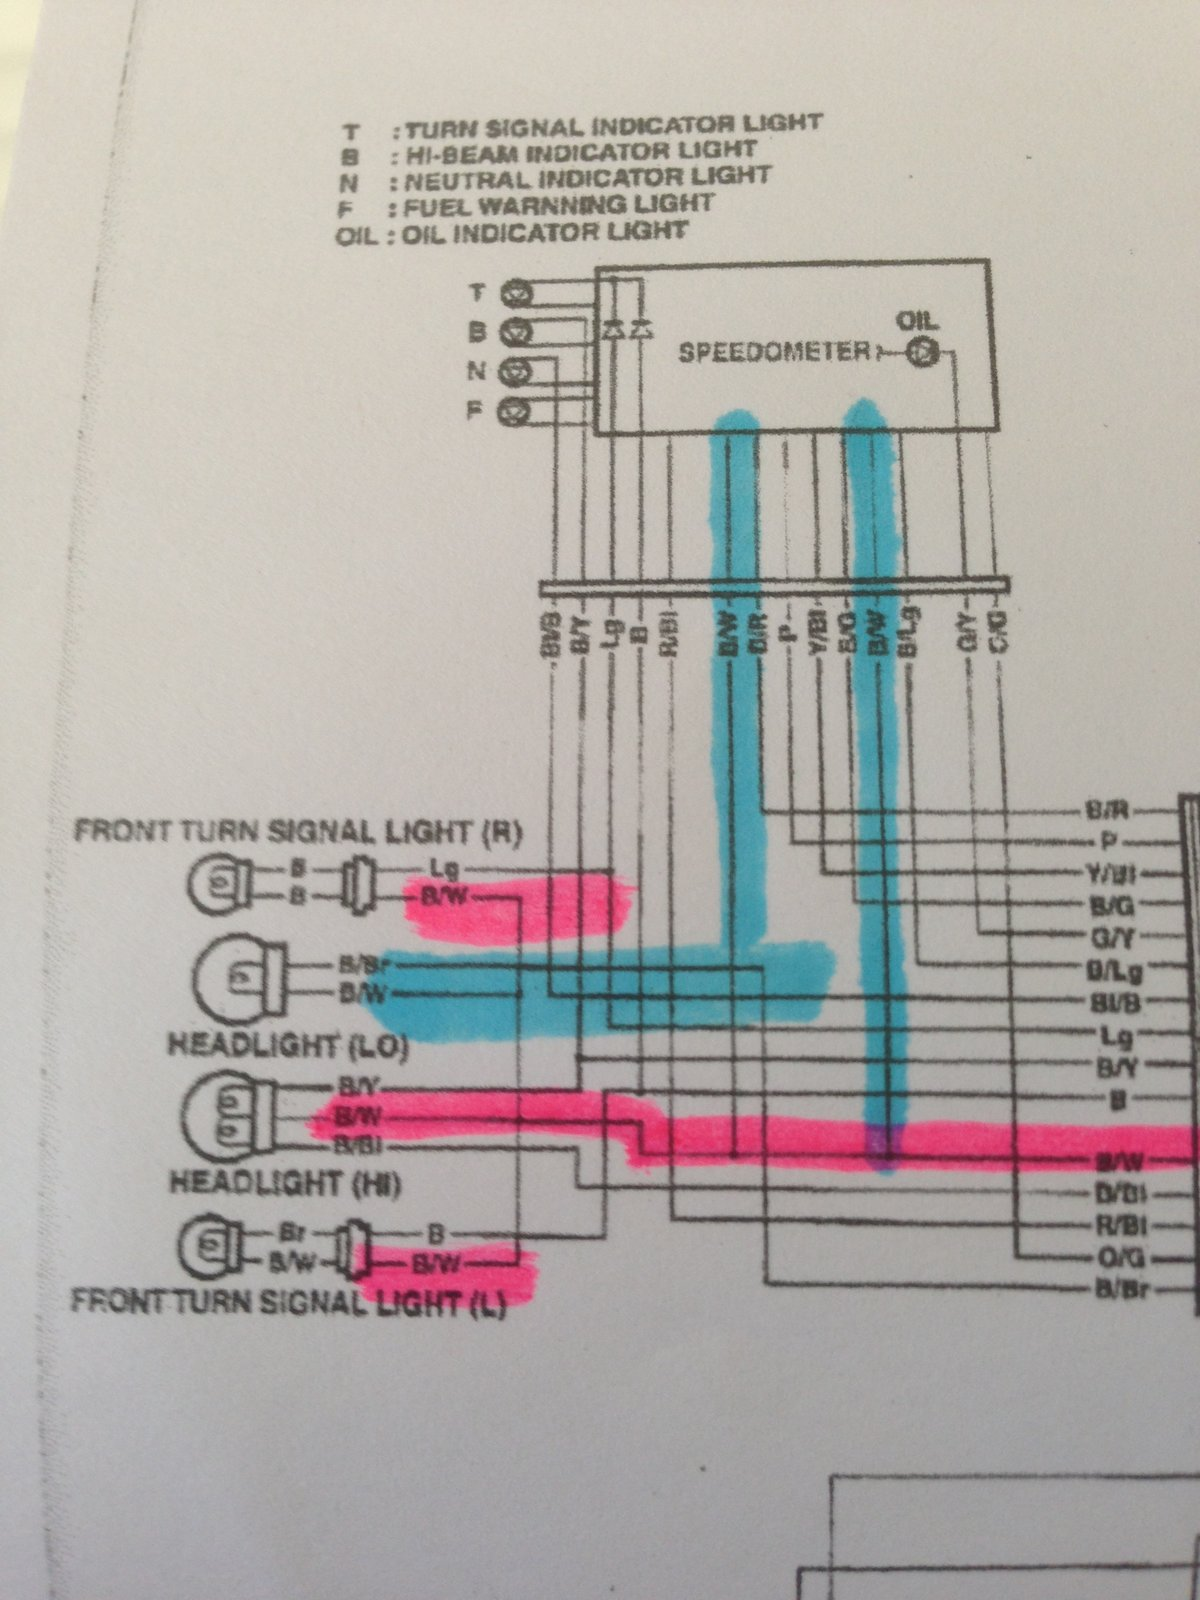 electrical question redundant ground 2005 gsxr600 south bay riders raptor wiring diagram what we can see is that the b w ground circuit you've highlighted in pink (and blue) is common to every component, including lamps that must be switched